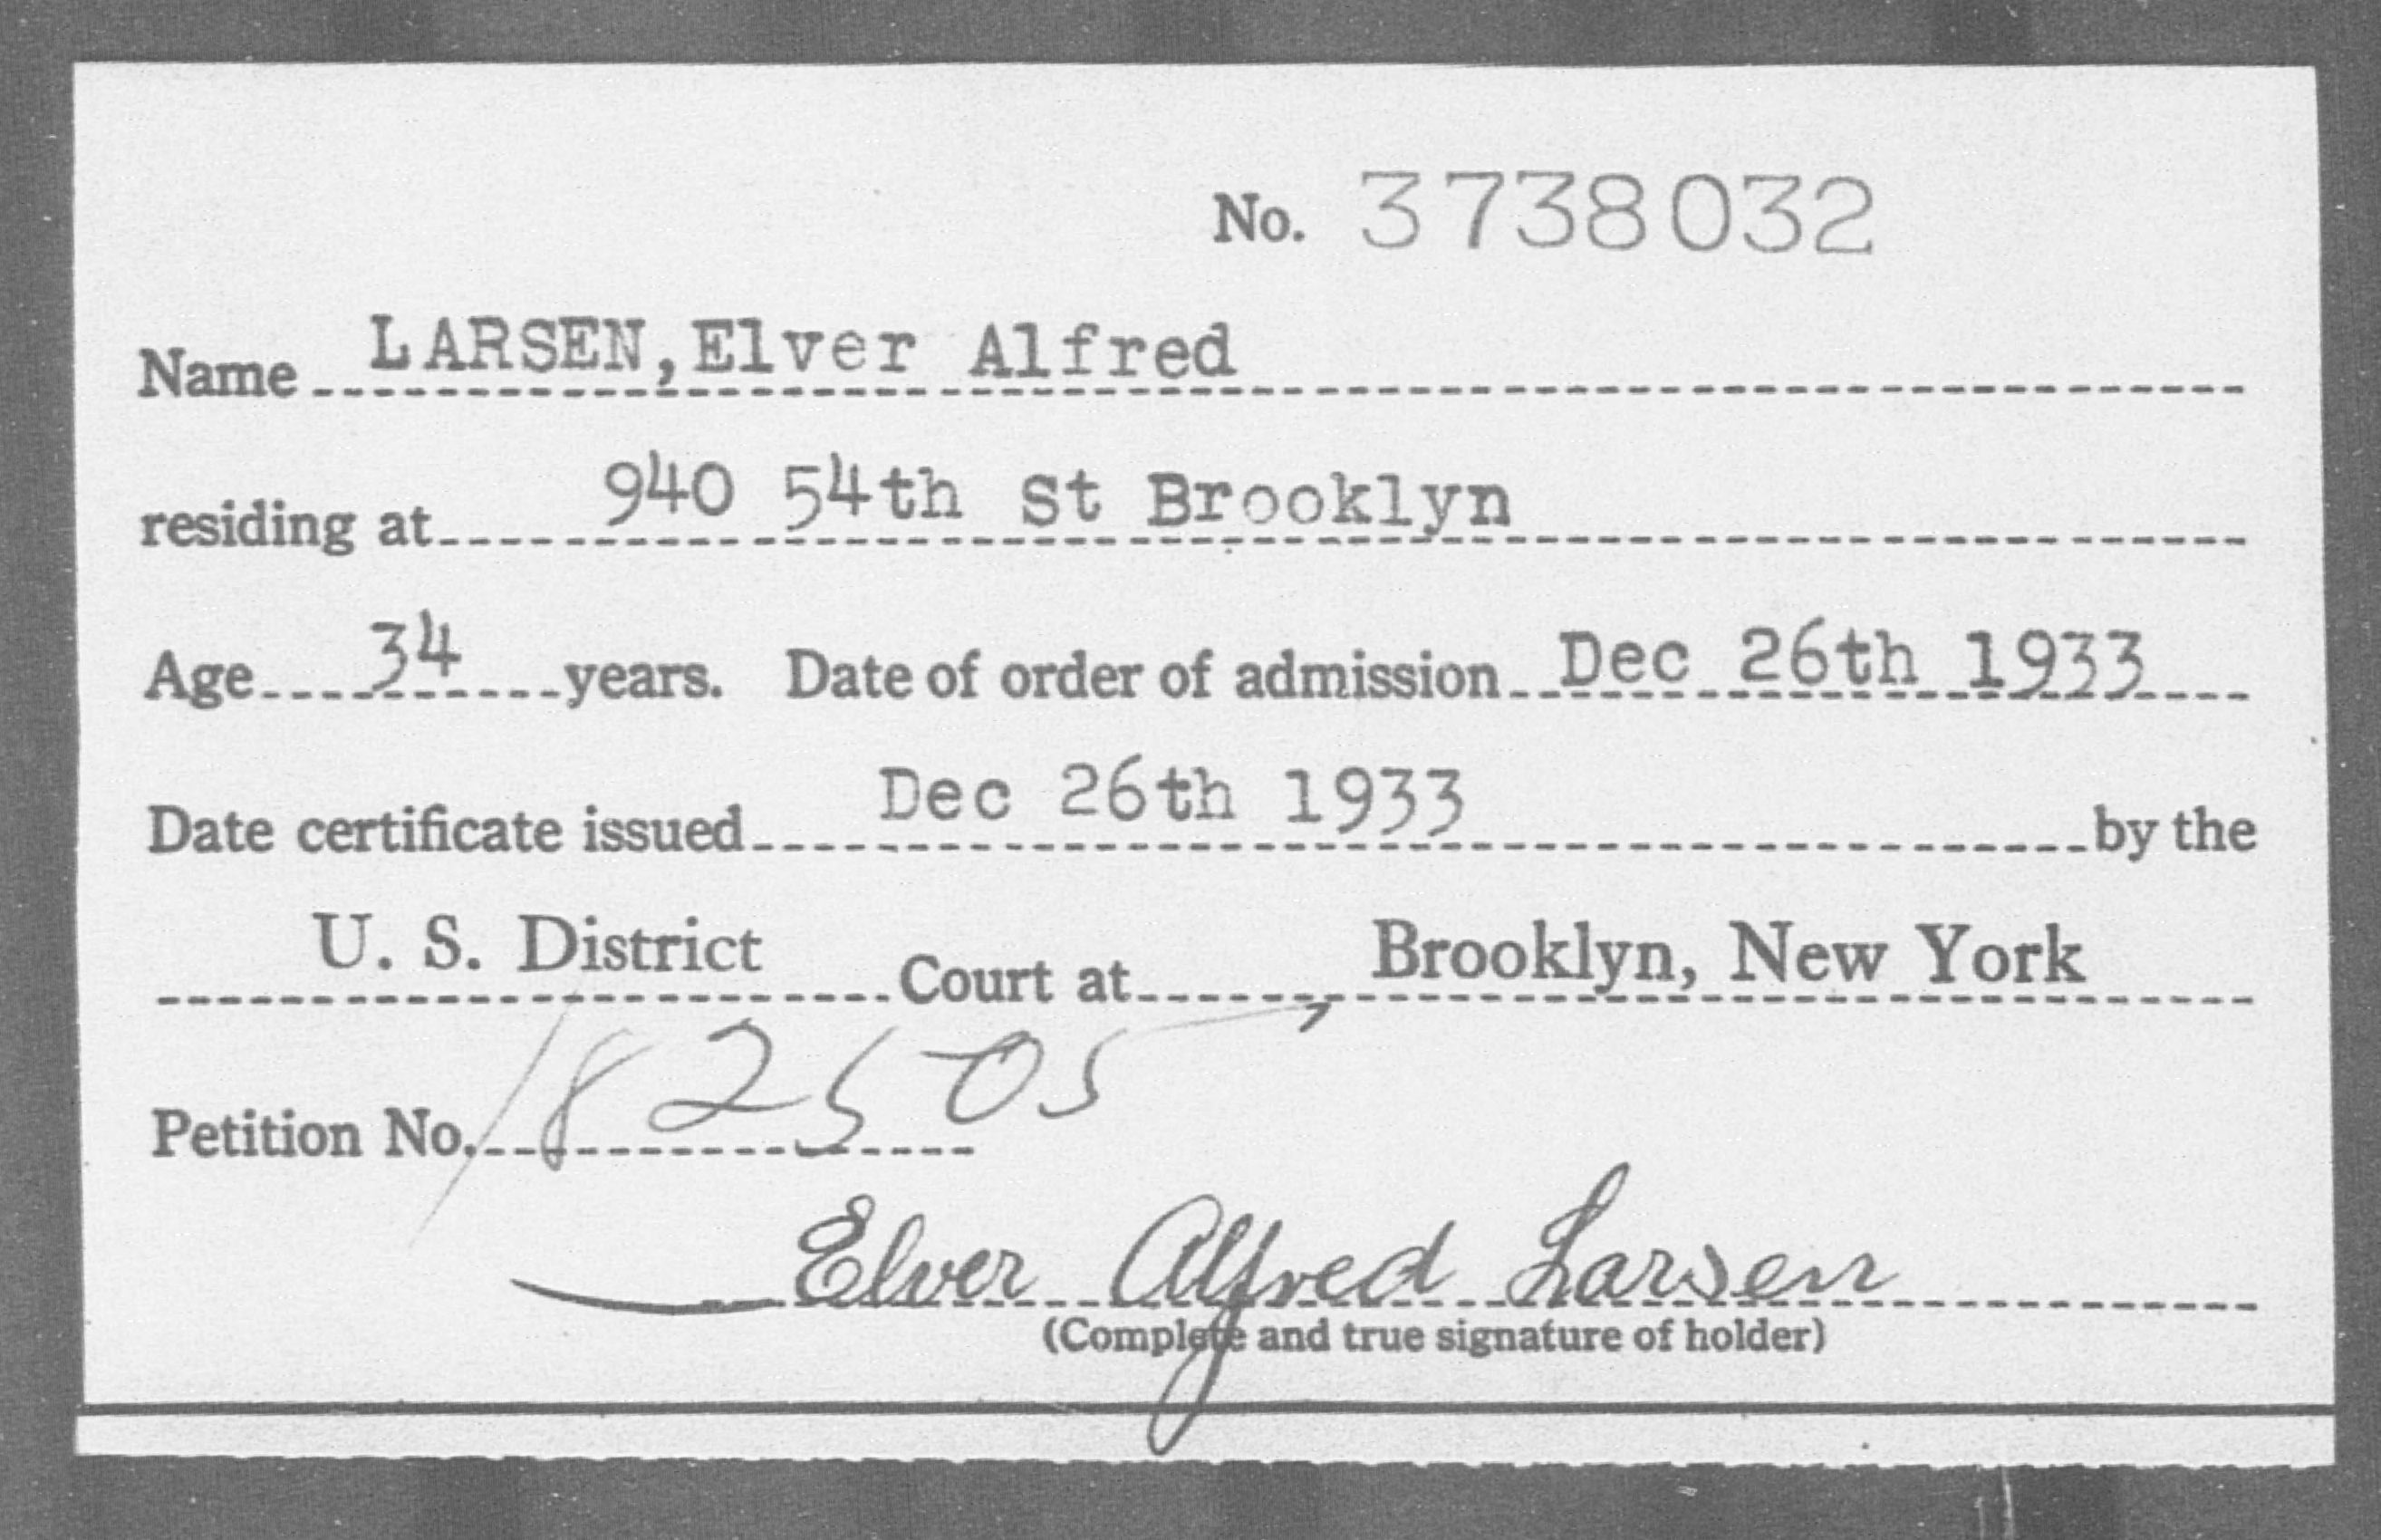 LARSEN, Elver Alfred - Born: [BLANK], Naturalized: 1933